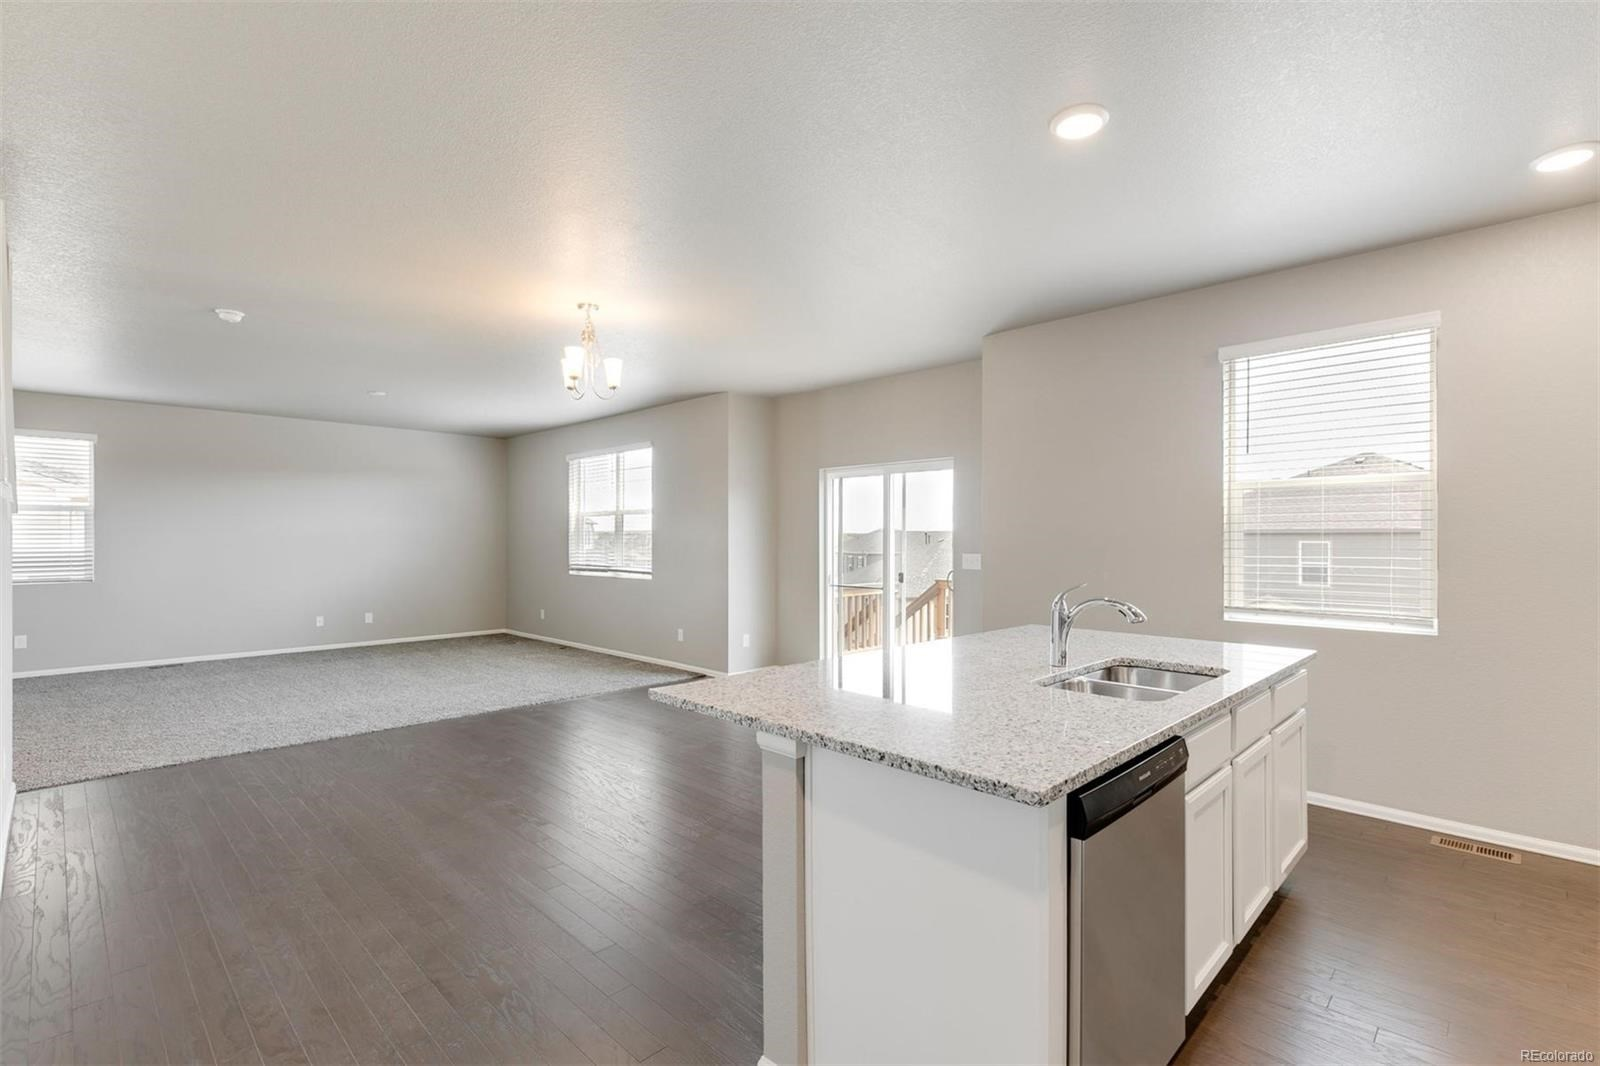 MLS# 3645271 - 11 - 6915 Grainery Court, Timnath, CO 80547